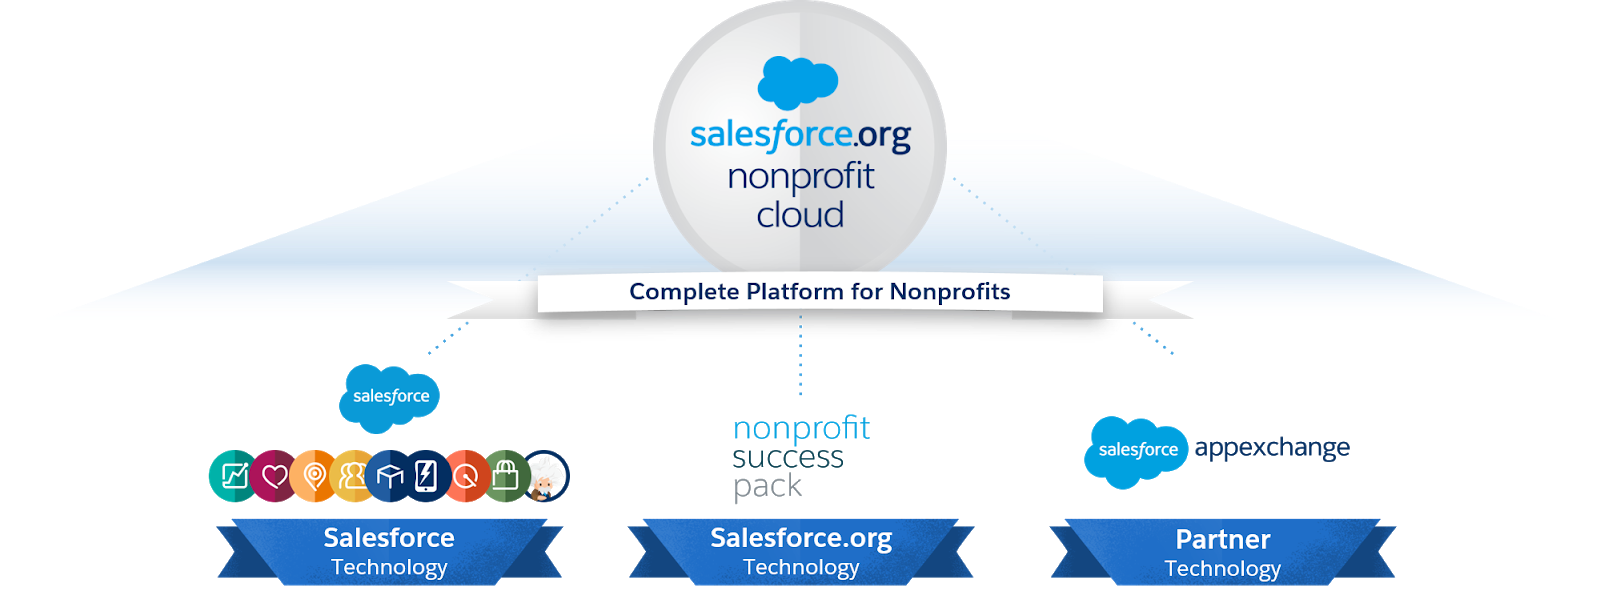 The Nonprofit Cloud platform is composed of three primary components: Salesforce technology, Salesforce.org technology, and partner technology.